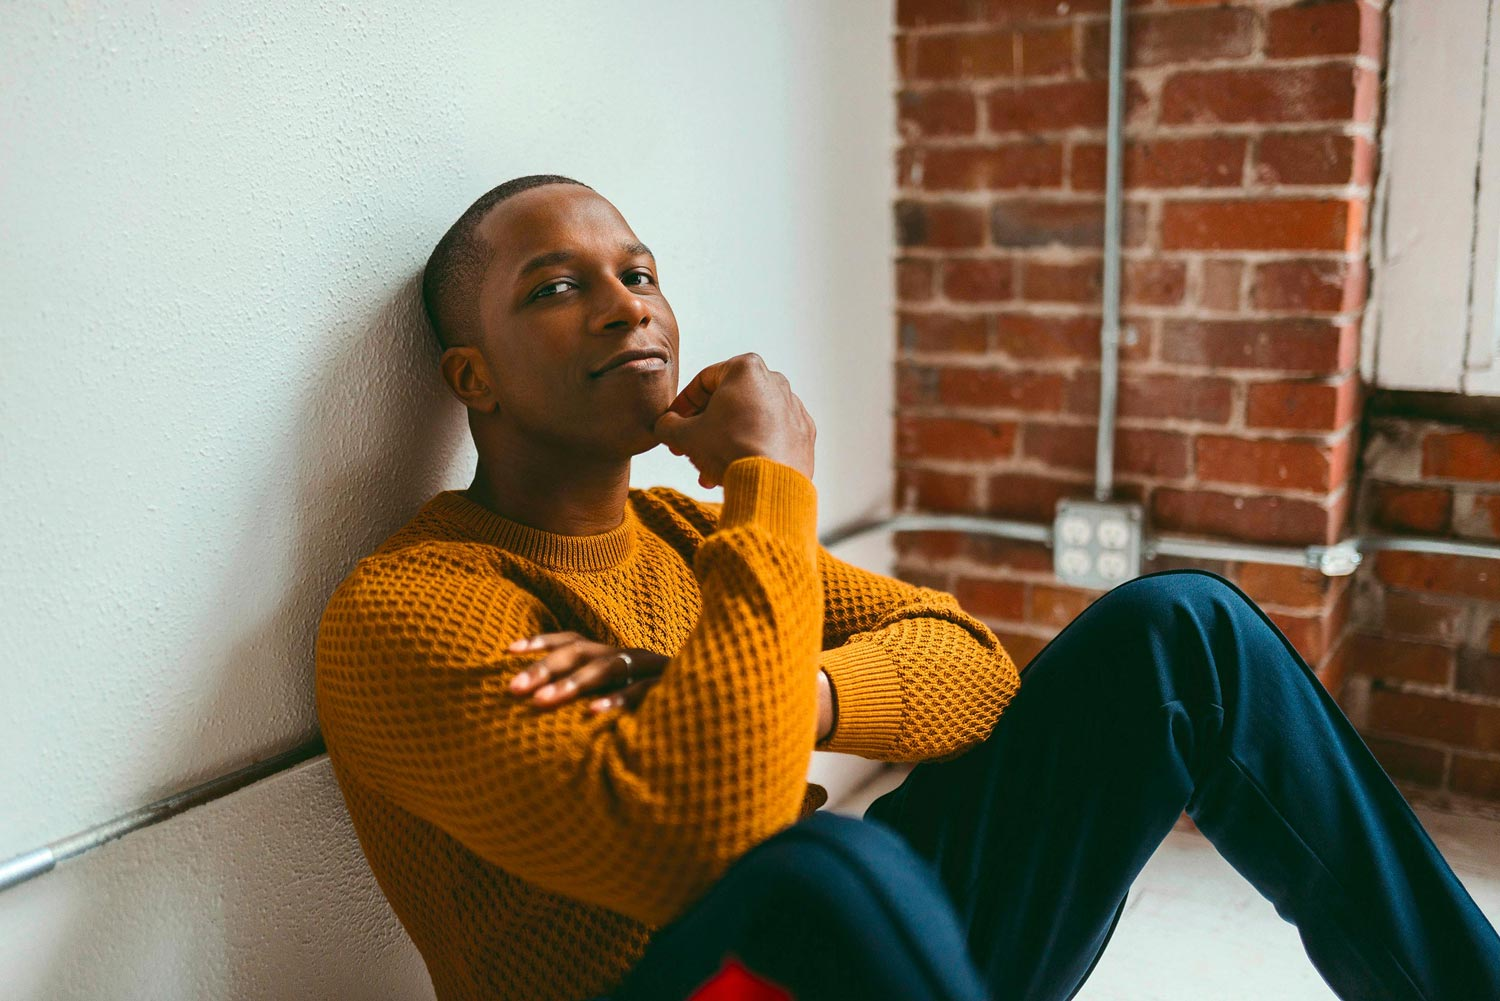 Odom is currently working on his second album, as well as a comedy with actress and producer Kerry Washington.